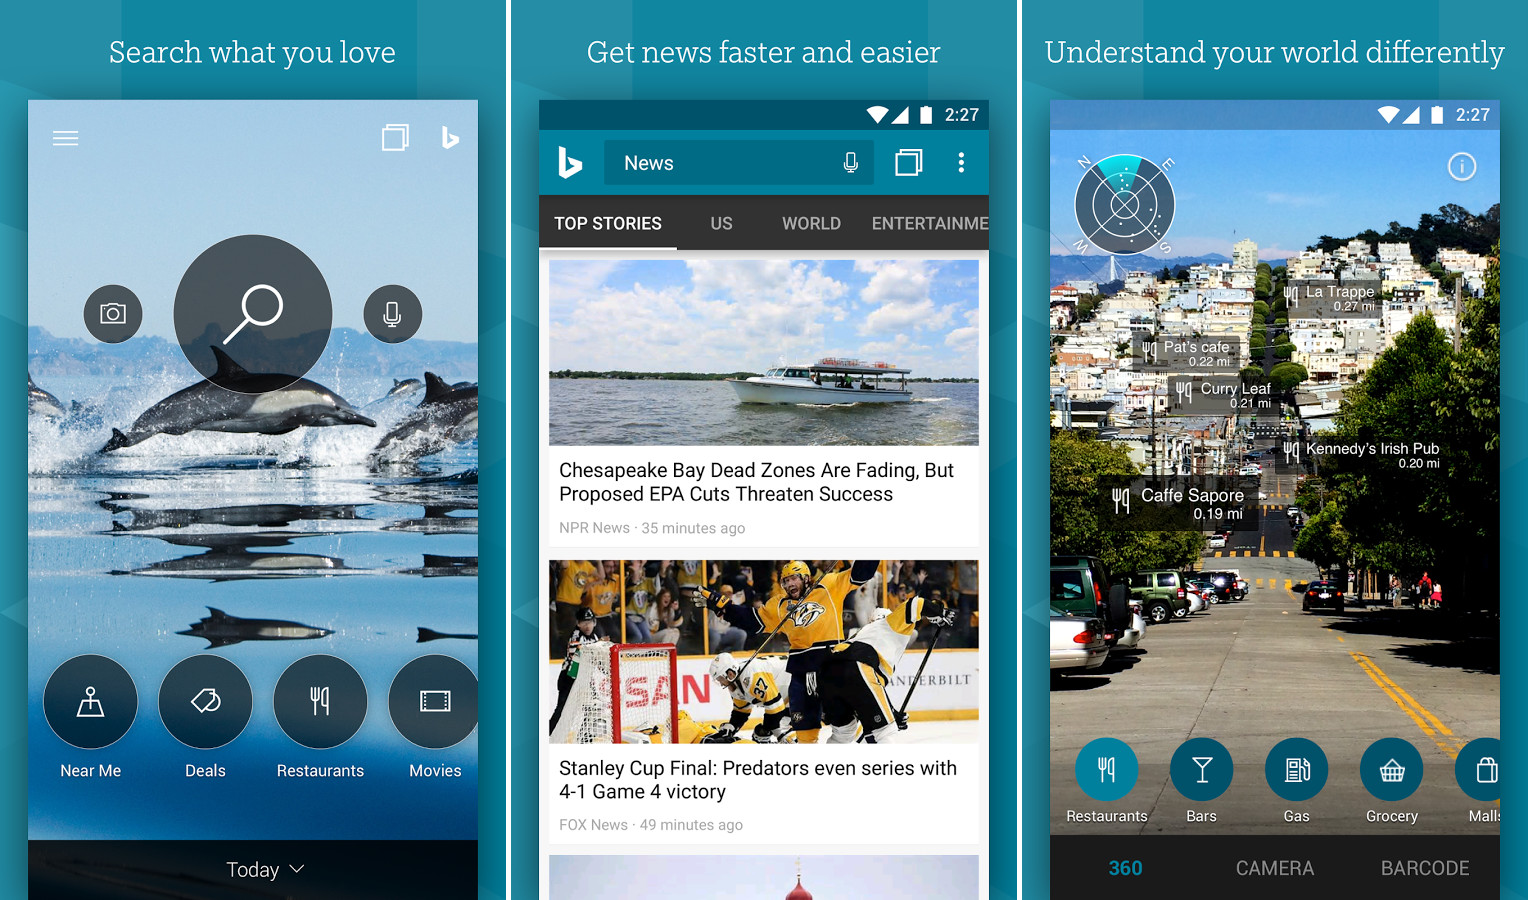 Bing Search app on Android updated with new look and features